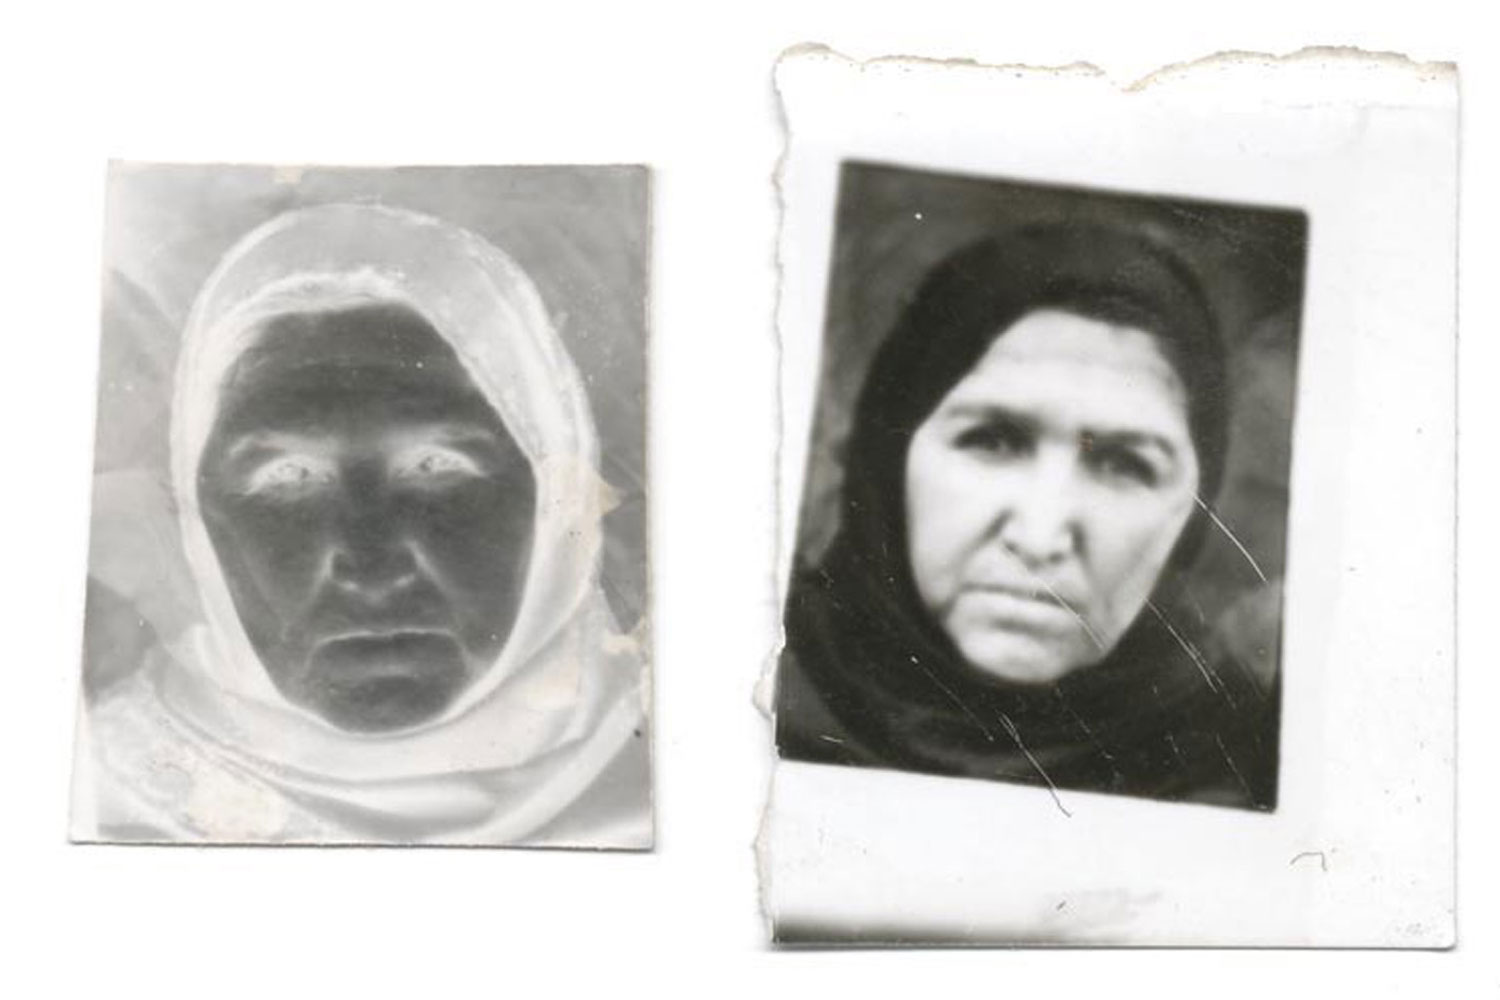 A paper negative and finished portrait by Qalam Nabi.